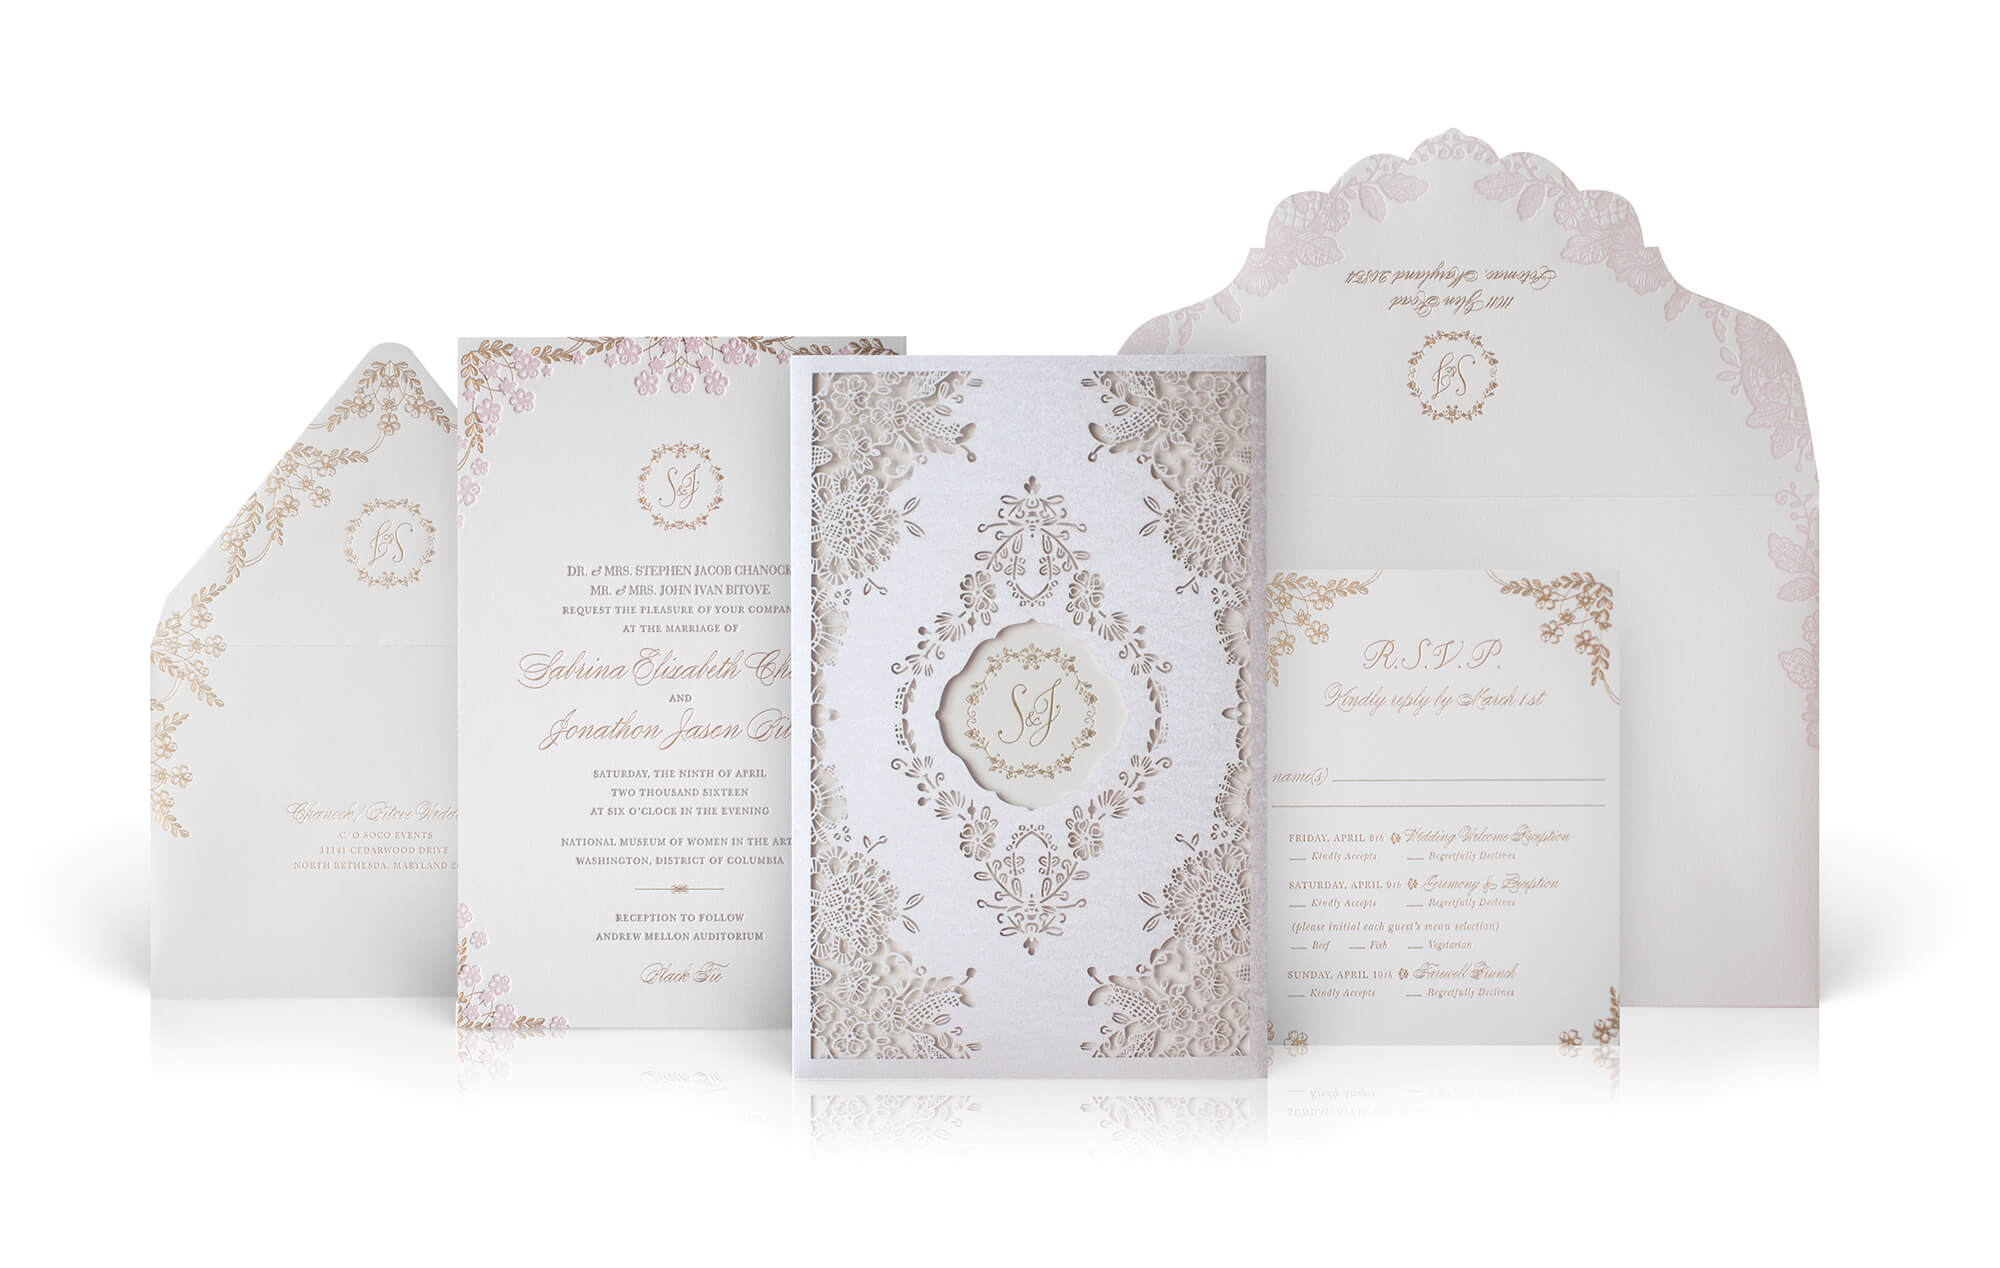 La Durée and cherry blossom invitation